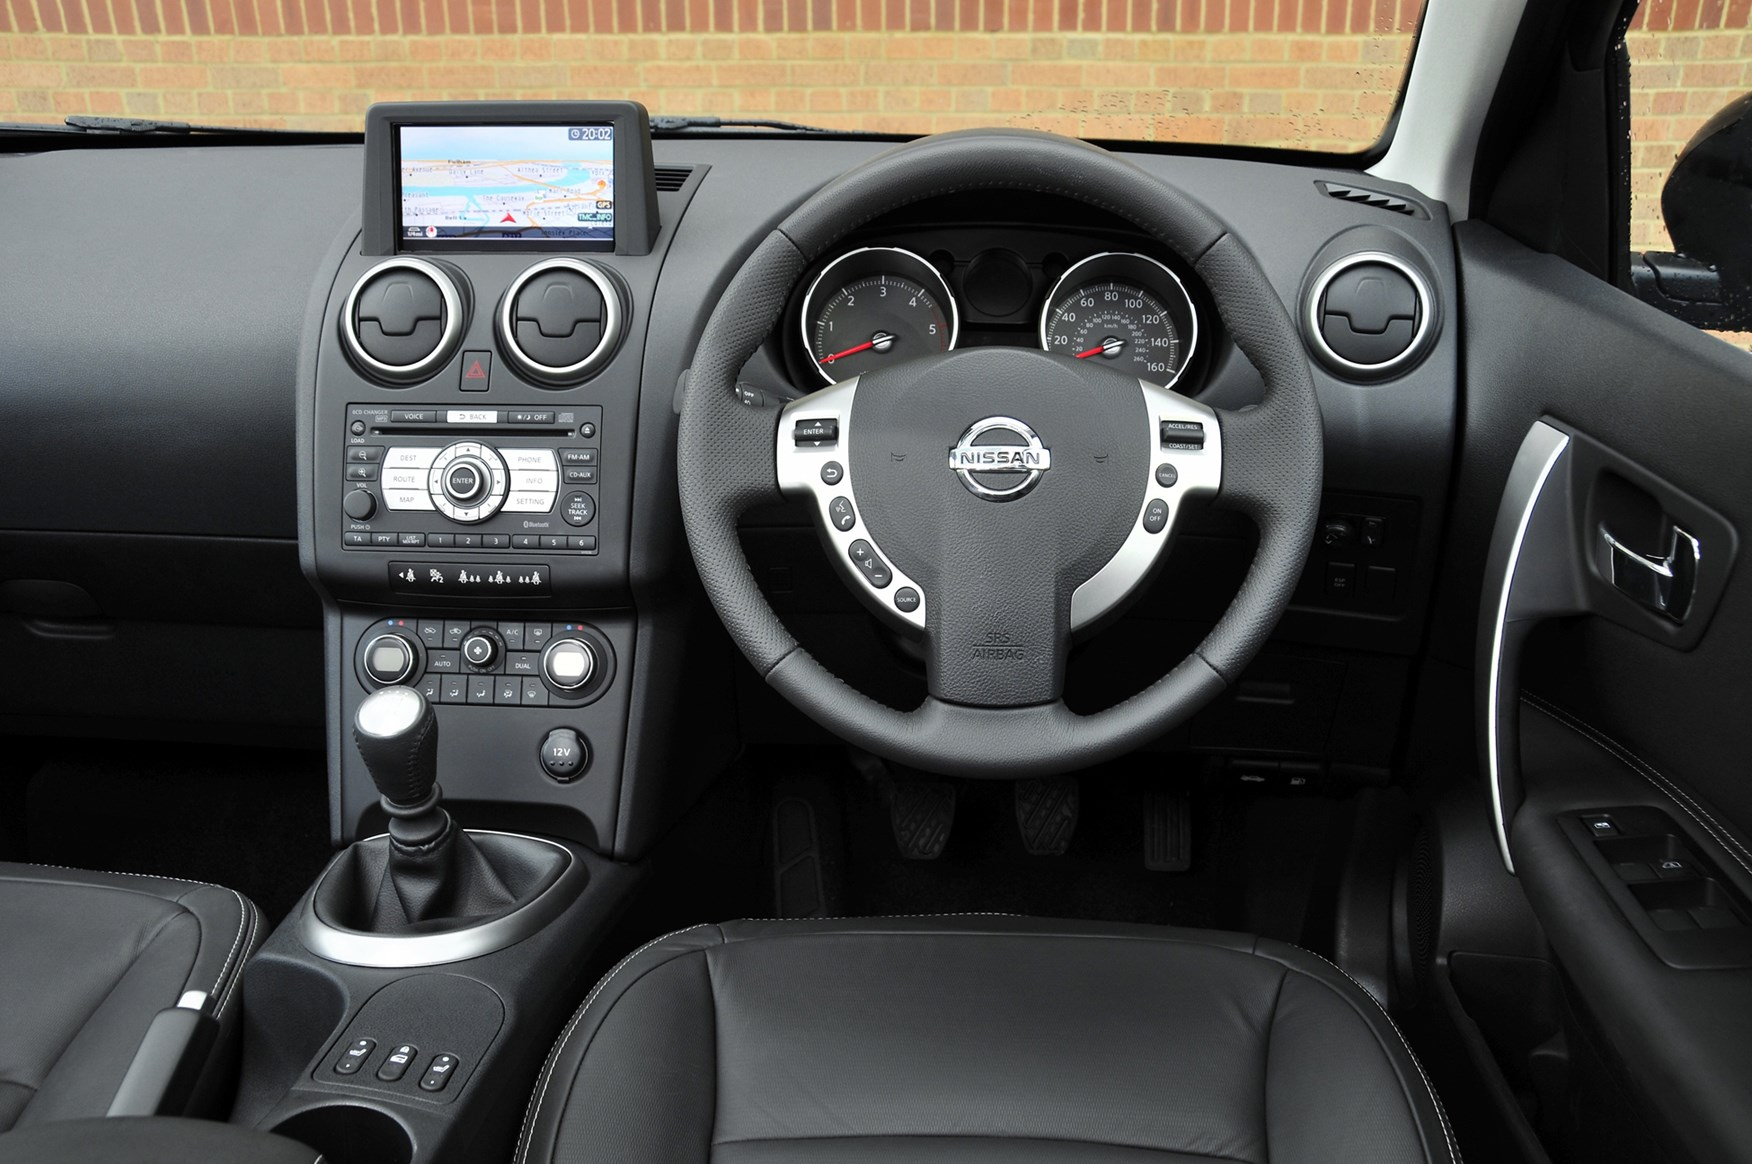 Nissan qashqai 2 estate review 2008 2013 parkers for Interior nissan qashqai